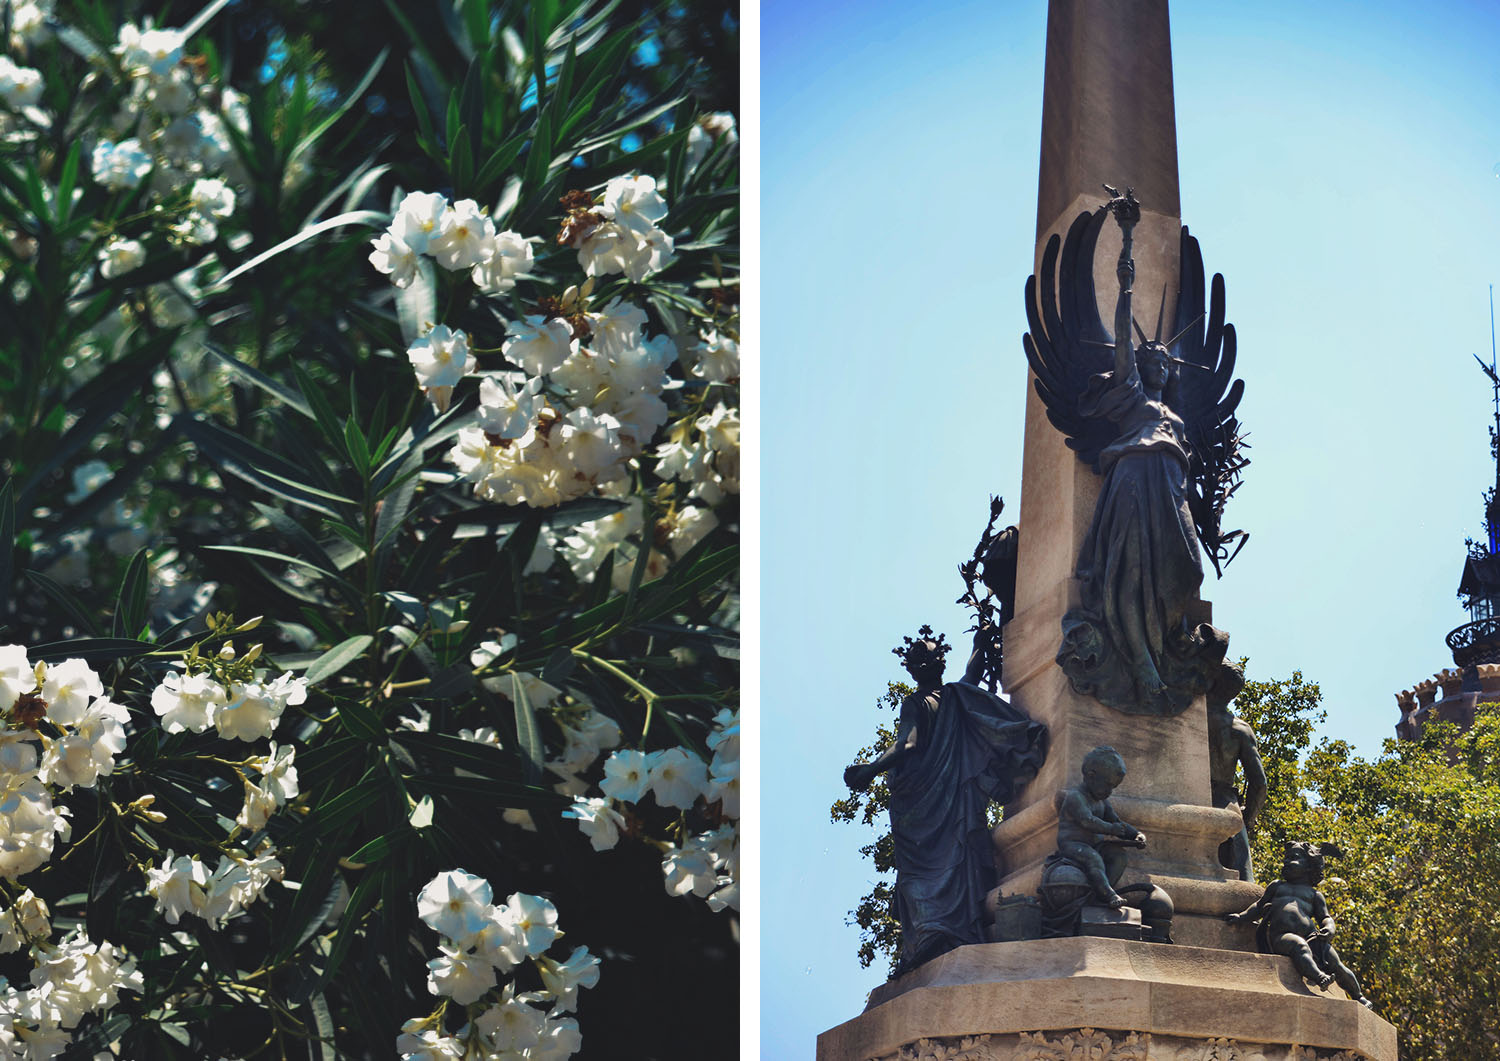 White flowers and an angel statue in Barcelona